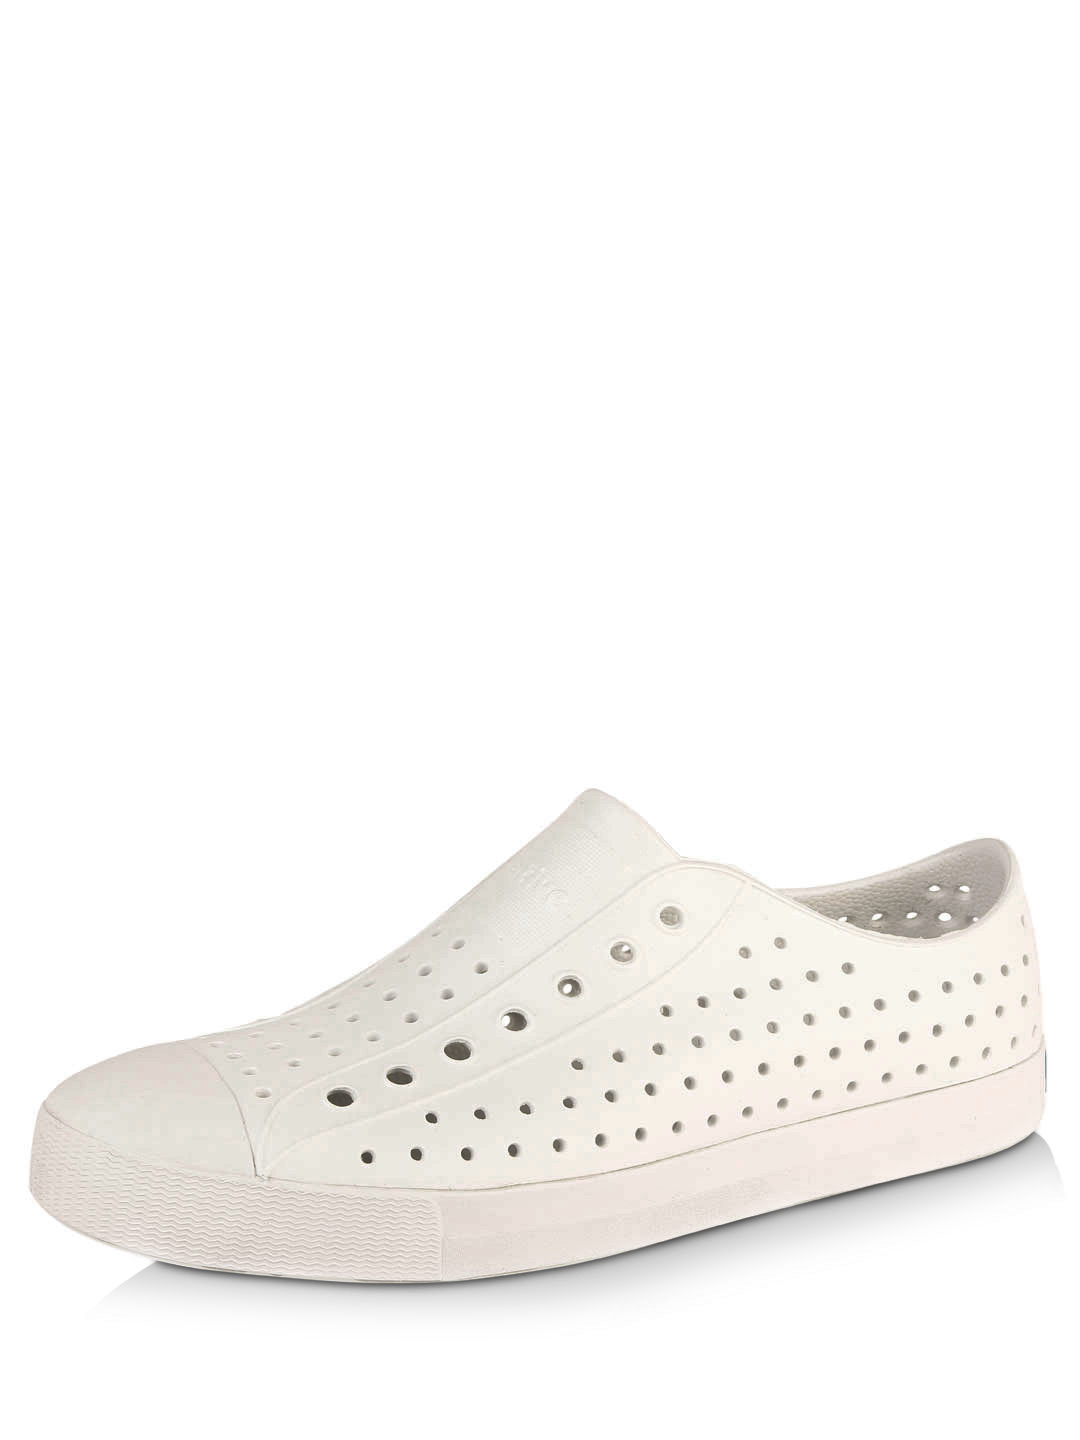 Native Shoes Shell white solid Single Tone Perforated Shoes 1